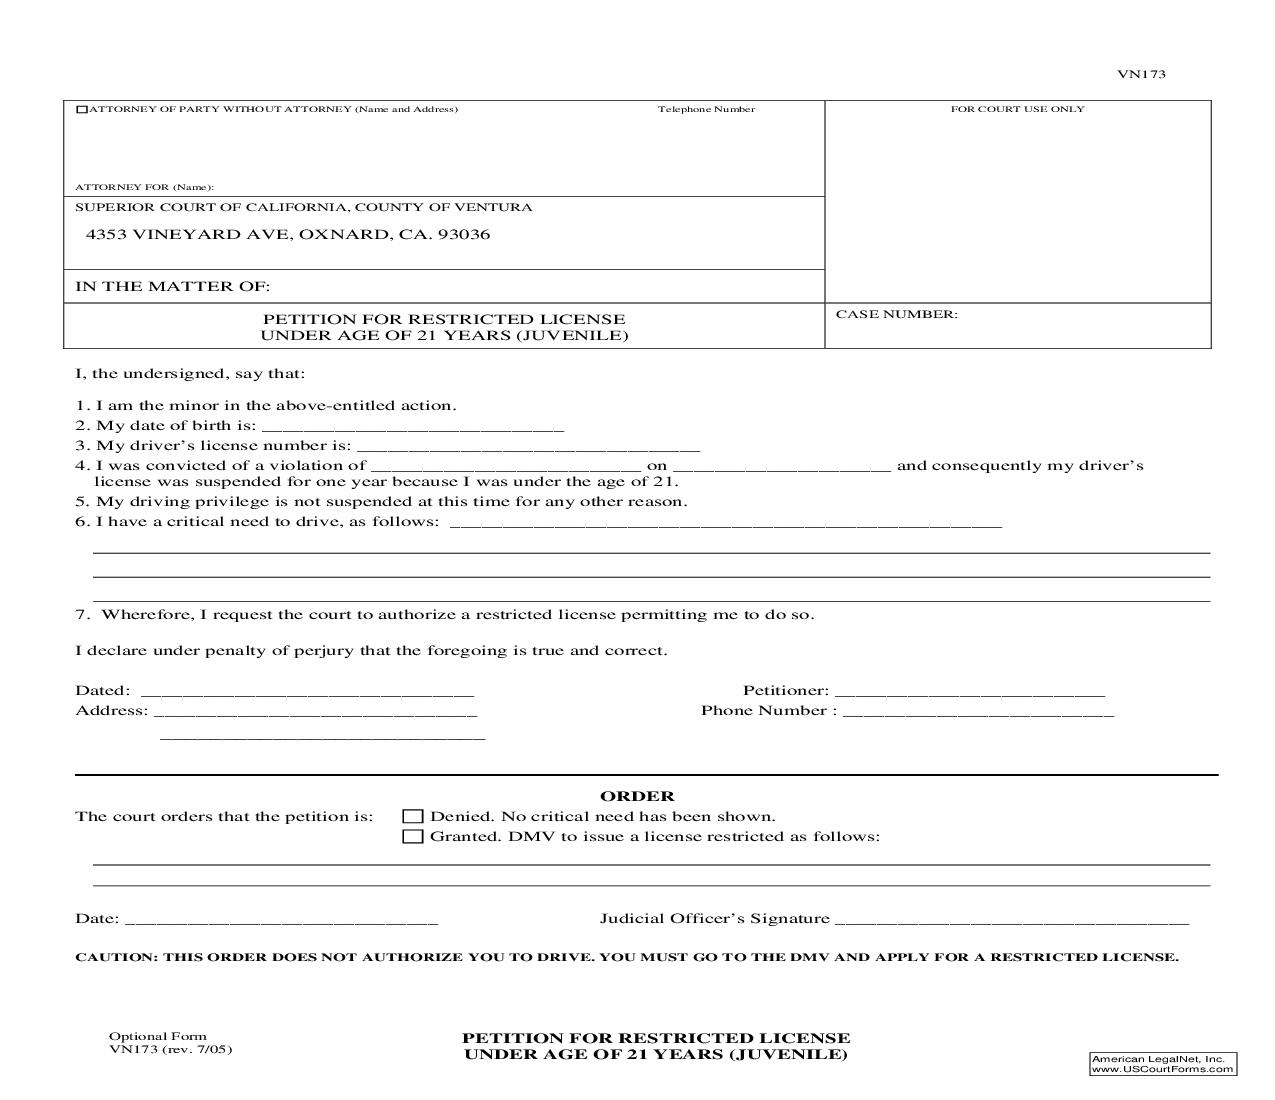 Petition For Restricted License Under Age Of 21 Years (Juvenile) {VN173} | Pdf Fpdf Doc Docx | California